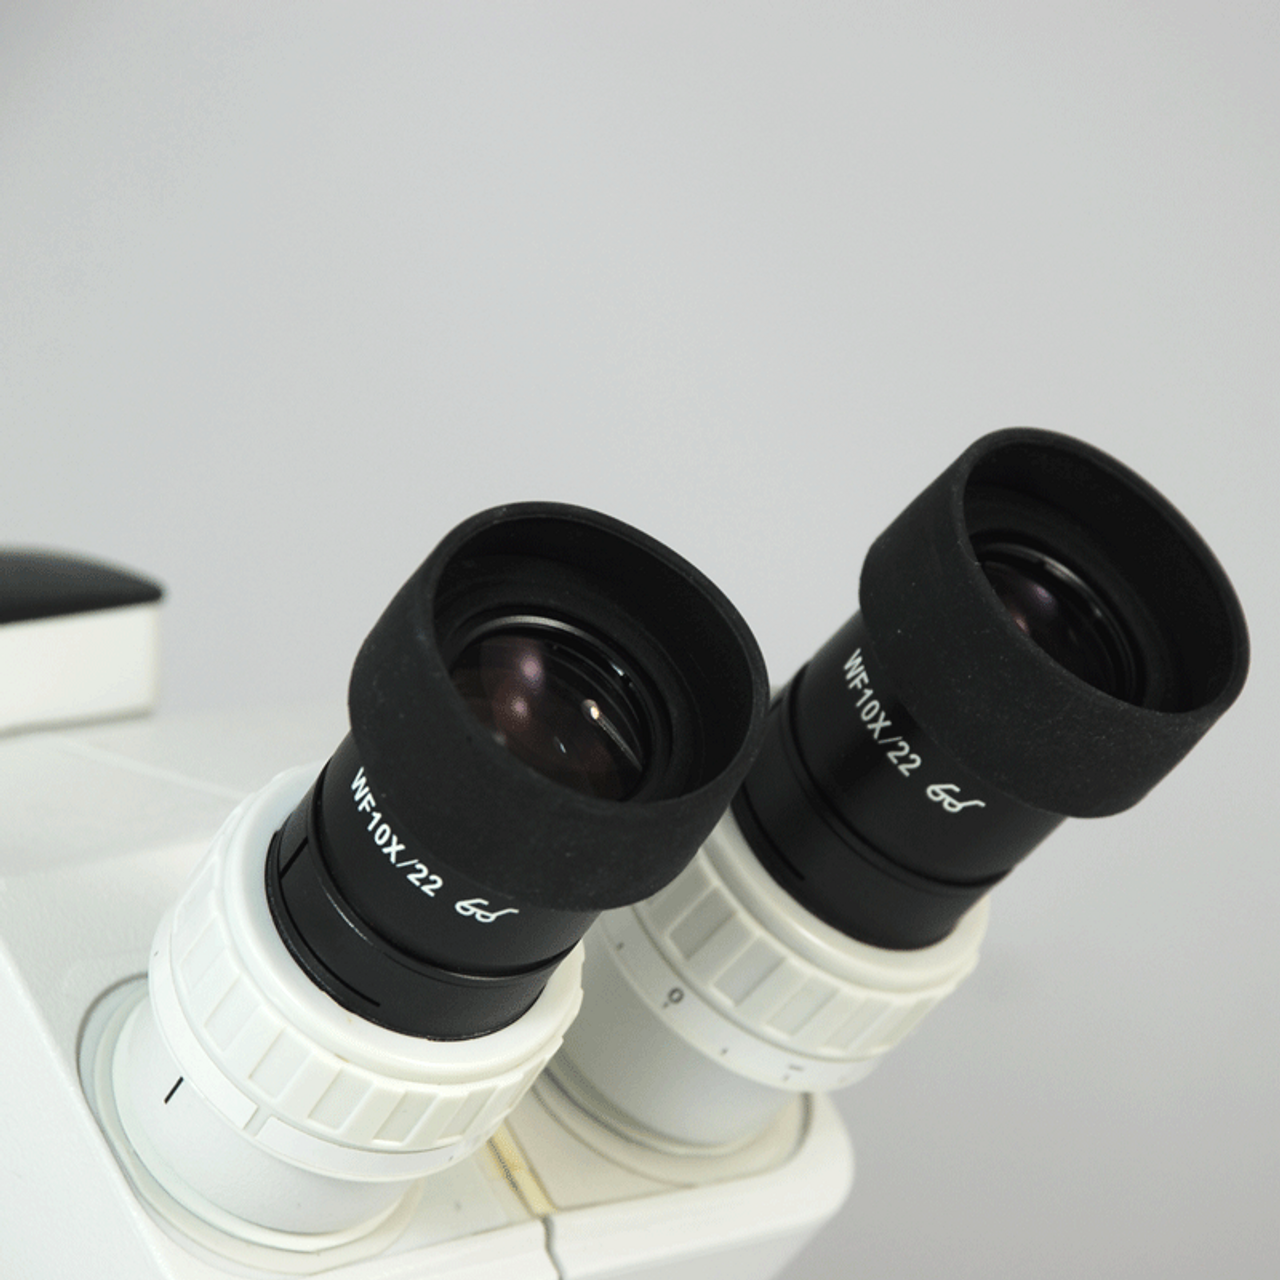 Eyepieces Focusing 100mm Scale